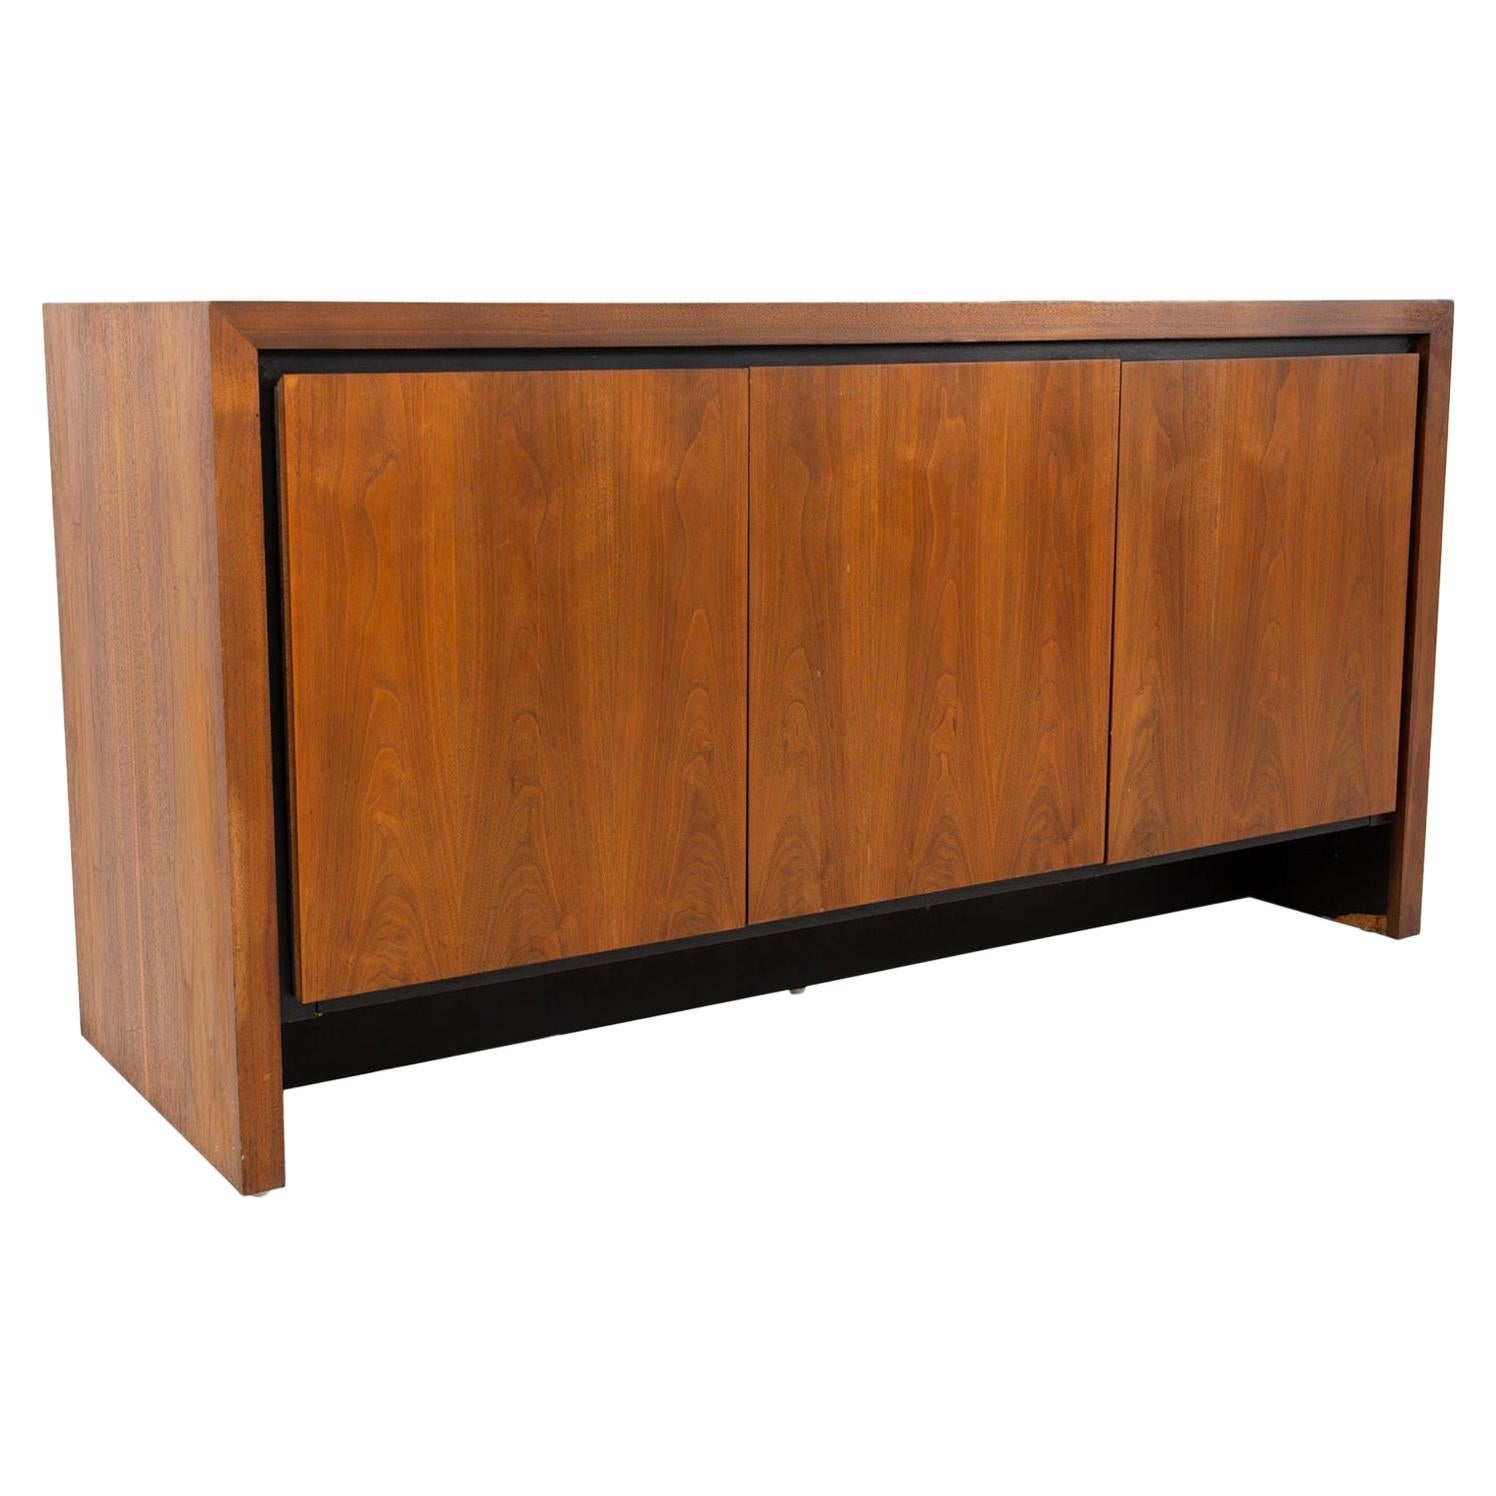 Dillingham Manufacturing Company Credenzas